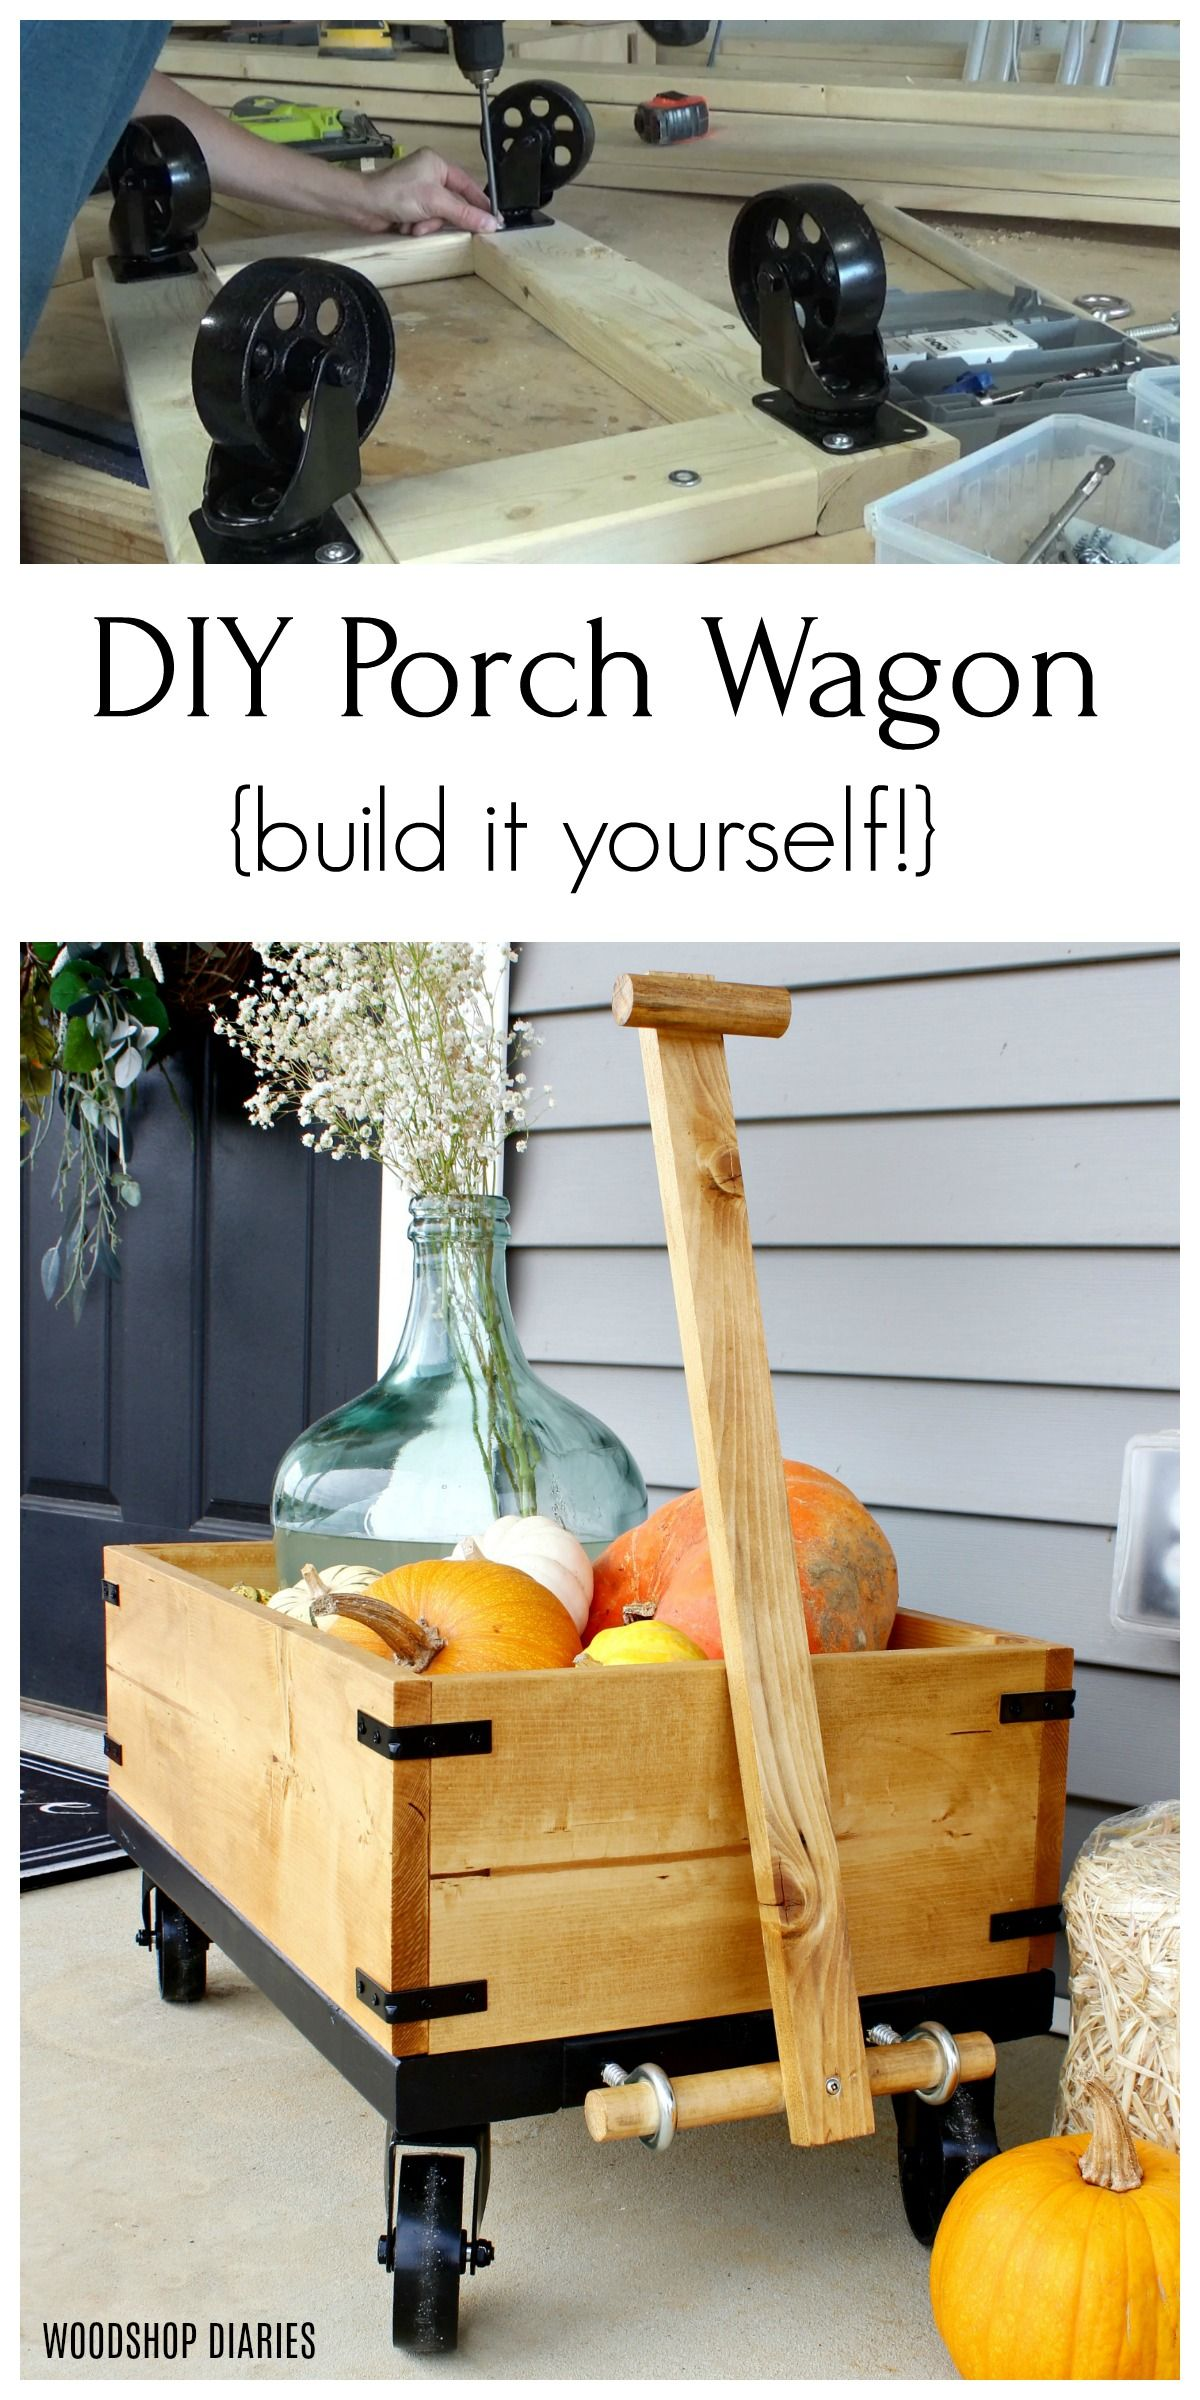 DIY Porch Wagon--Built it Yourself!